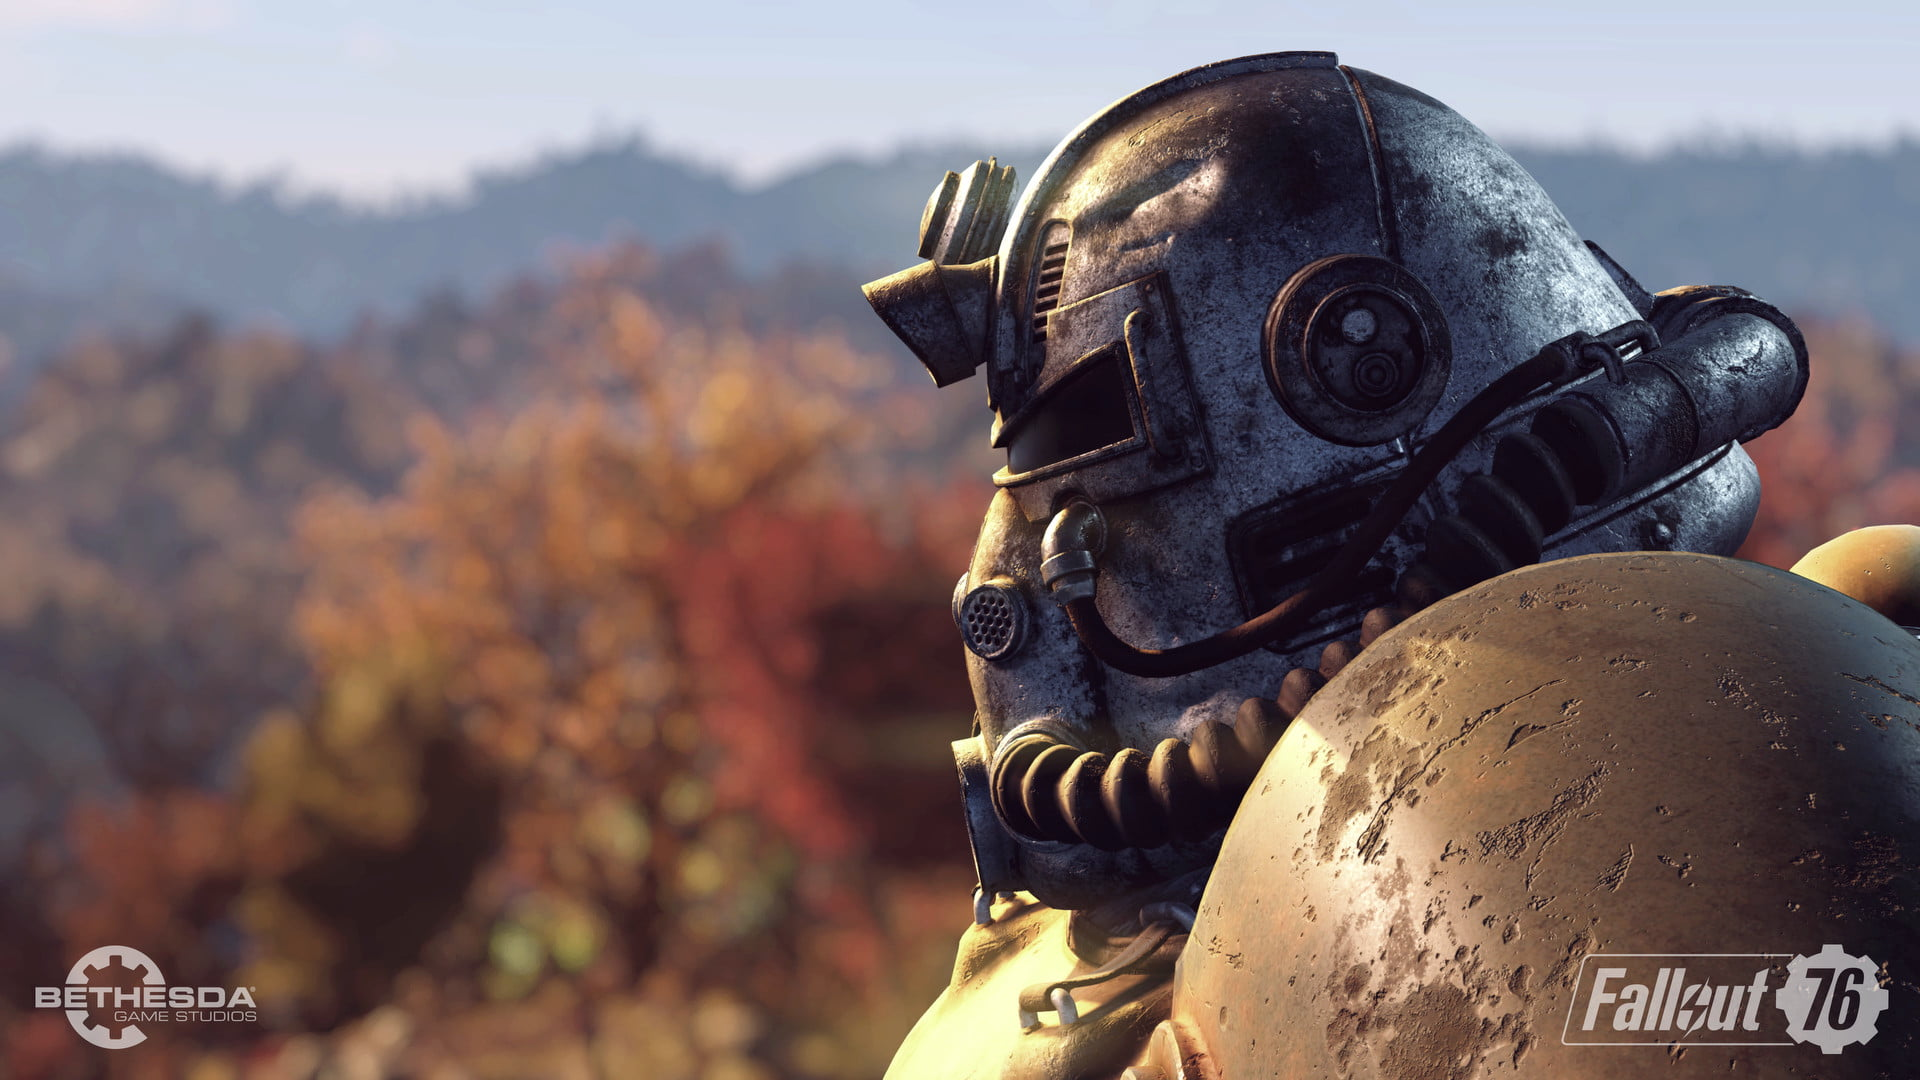 Fallout 76 Bug is Turning Players Into Mutants, and Not the